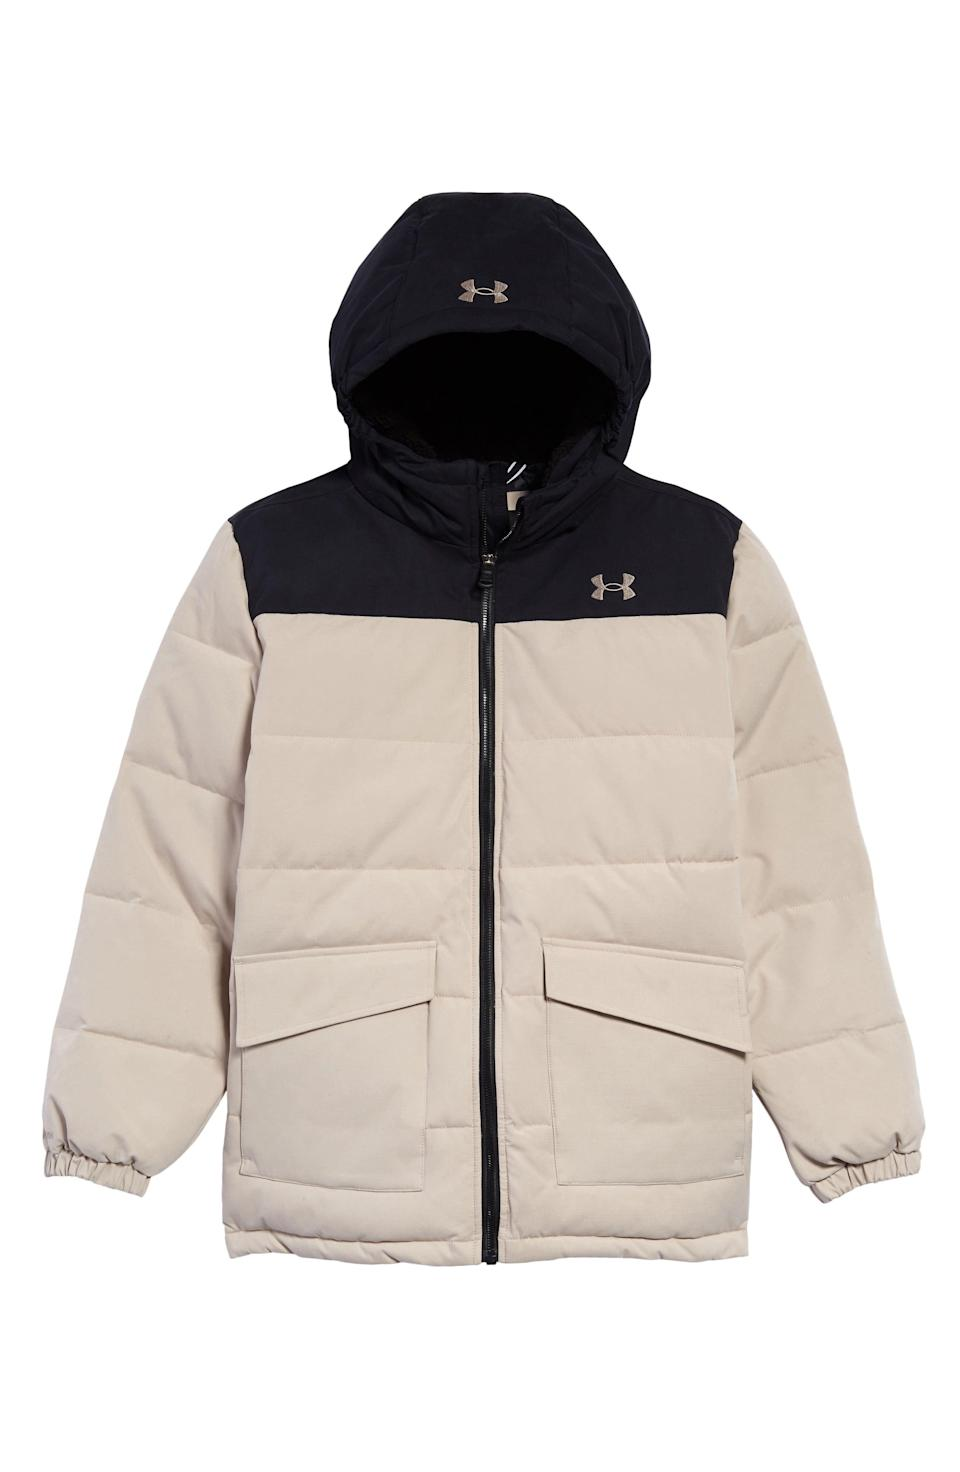 "<p><strong>UNDER ARMOUR</strong></p><p>nordstrom.com</p><p><strong>$73.70</strong></p><p><a href=""https://go.redirectingat.com?id=74968X1596630&url=https%3A%2F%2Fwww.nordstrom.com%2Fs%2Funder-armour-kids-magnus-water-repellent-puffer-parka-big-boy%2F5736373&sref=https%3A%2F%2Fwww.redbookmag.com%2Flife%2Fg34811477%2Fblack-friday-cyber-monday-baby-deals-2020%2F"" rel=""nofollow noopener"" target=""_blank"" data-ylk=""slk:Shop Now"" class=""link rapid-noclick-resp"">Shop Now</a></p><p>For minimal littles.</p>"